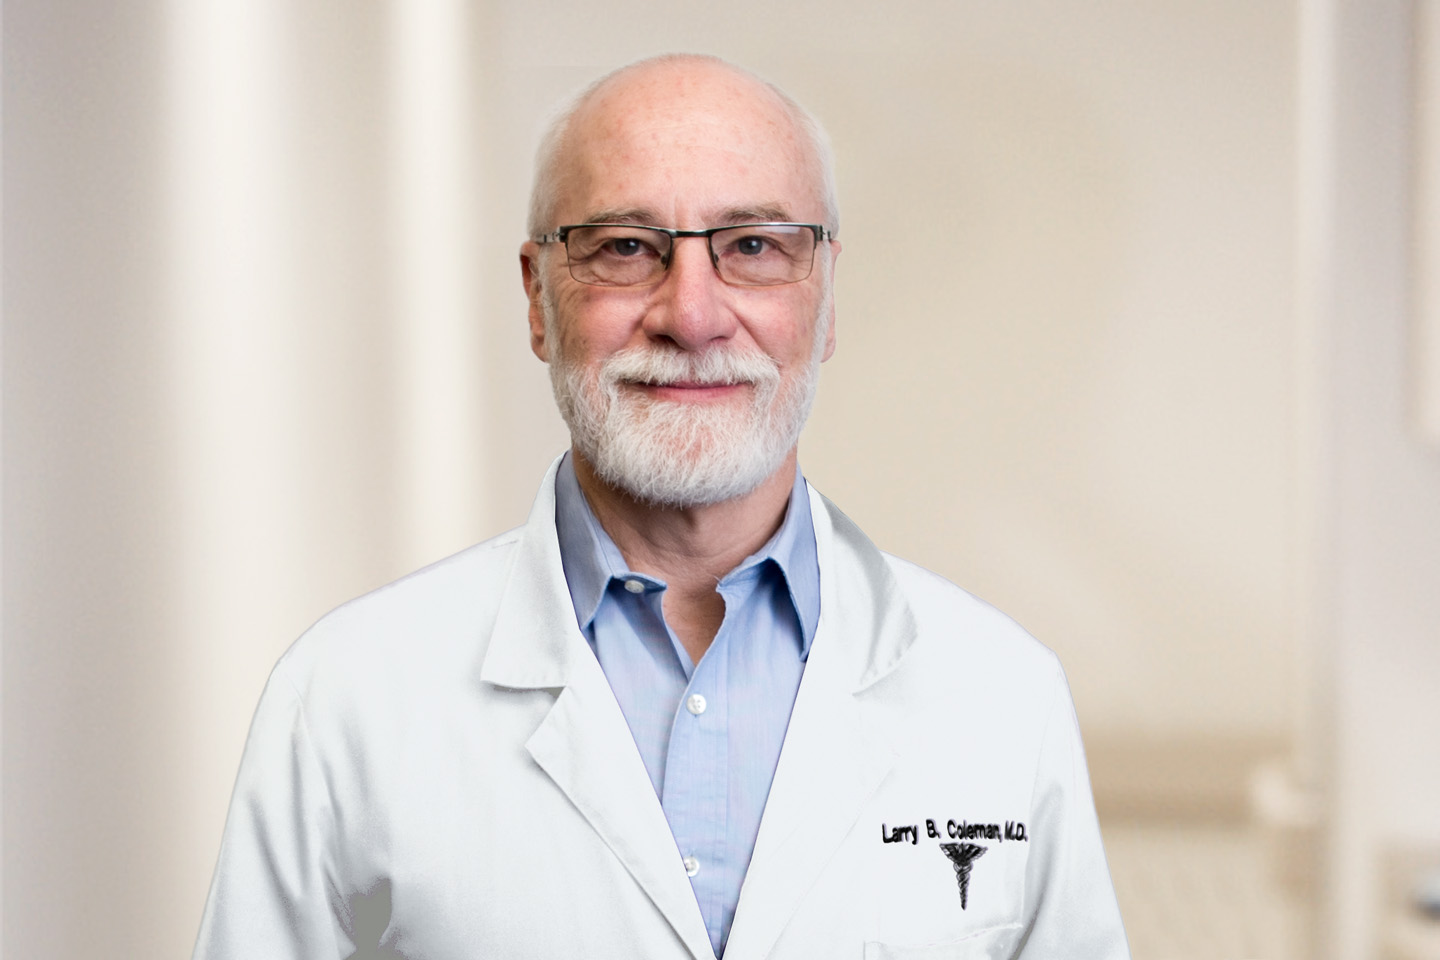 Larry B. Coleman, MD